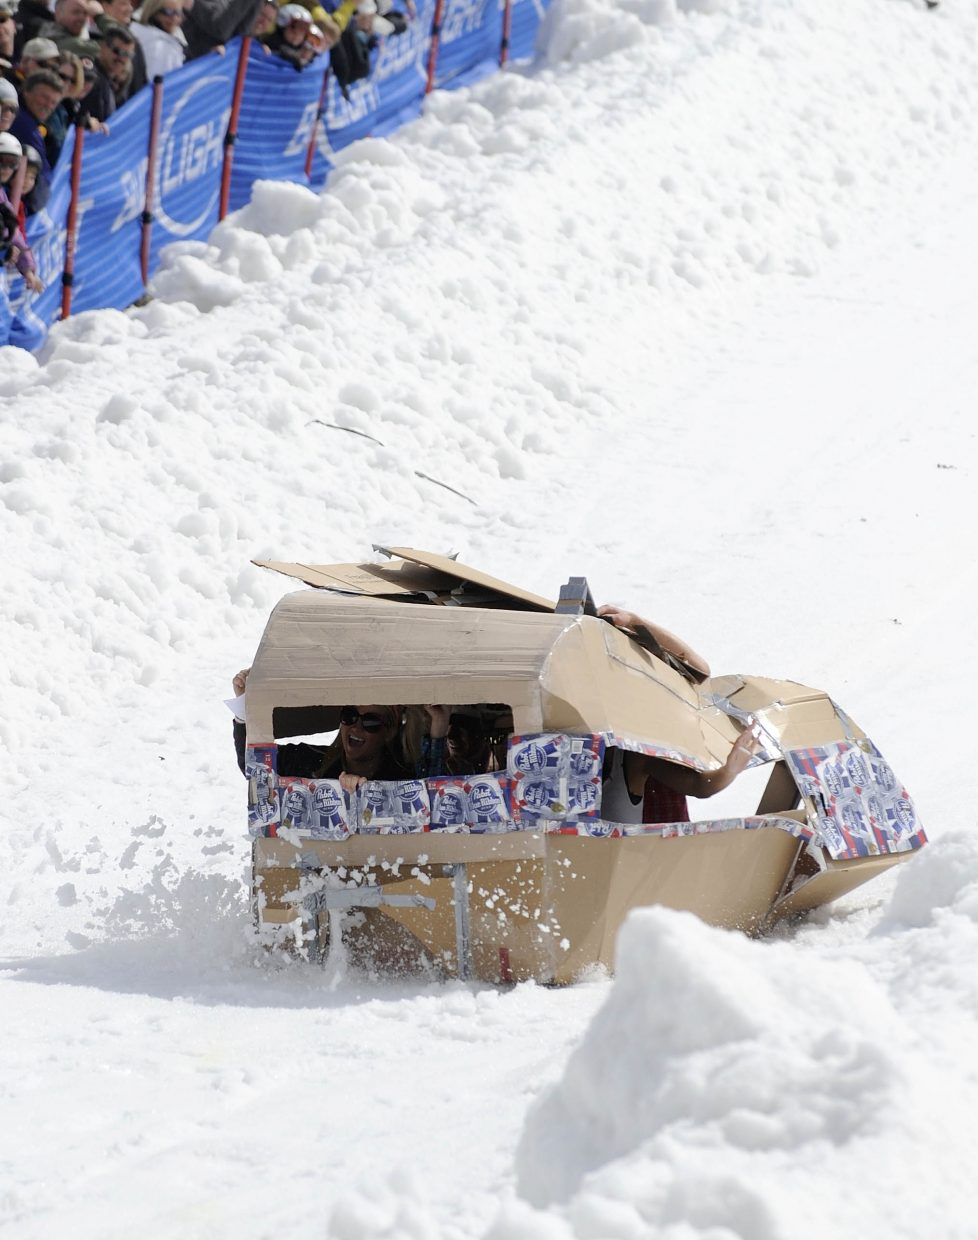 A mobile-home-themed craft races during Saturday's Cardboard Classic at Steamboat Ski Area.